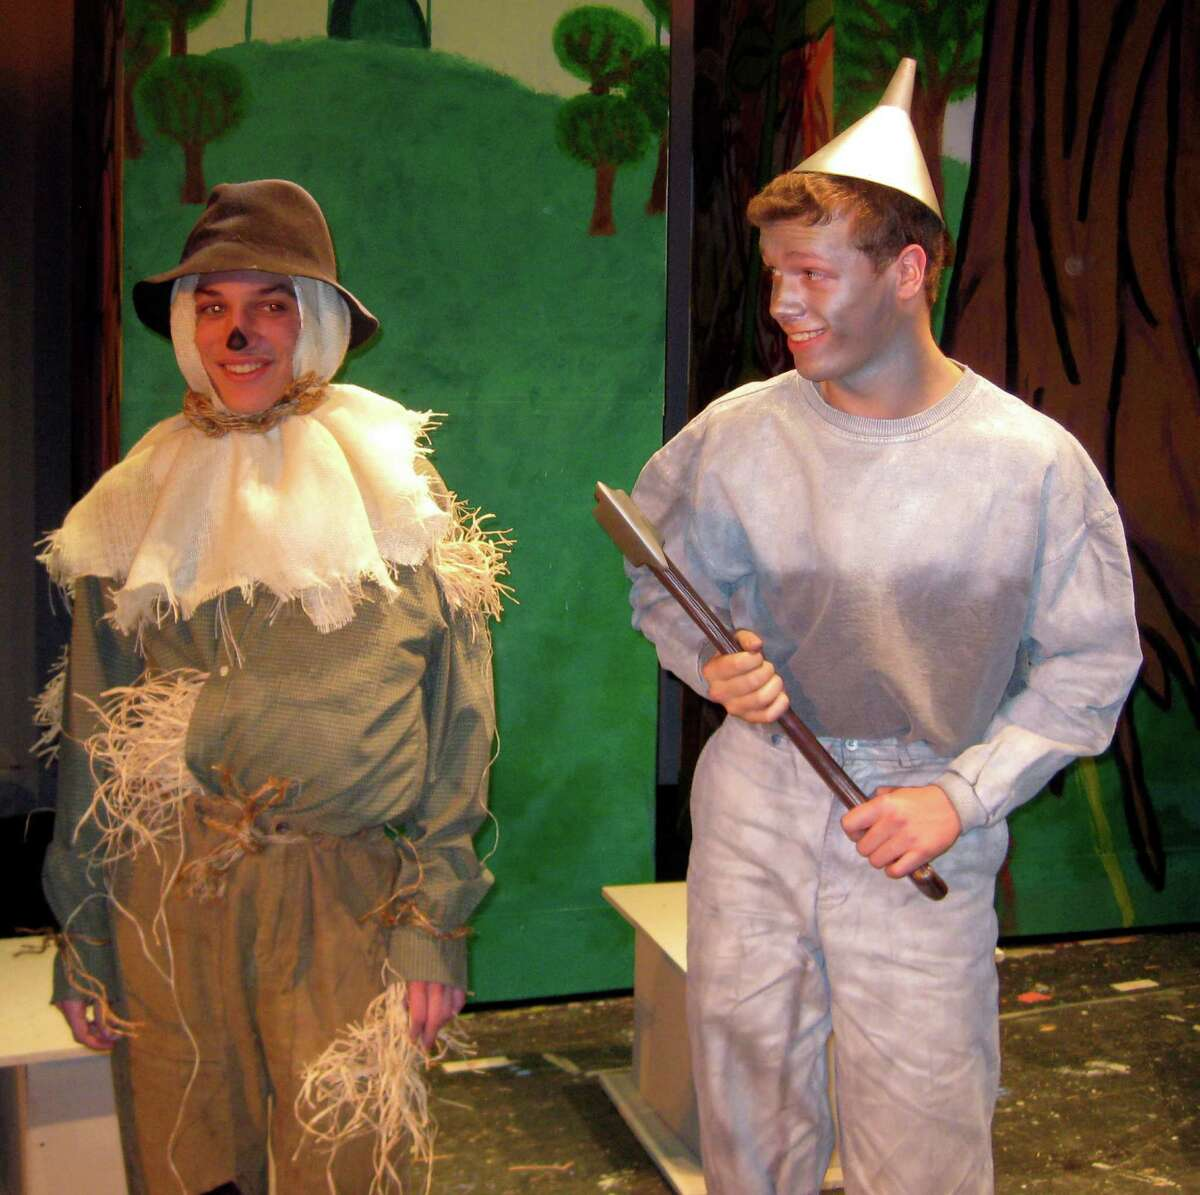 """James Purcell as Scarecrow, left, and Tim Dutton as the Tin Man rehearse a scene from Fairfield Ludlowe High School's production of """"The Wizard of Oz."""" The musical is planned Friday, April 25, and Saturday, April 26, in the school's auditorium."""